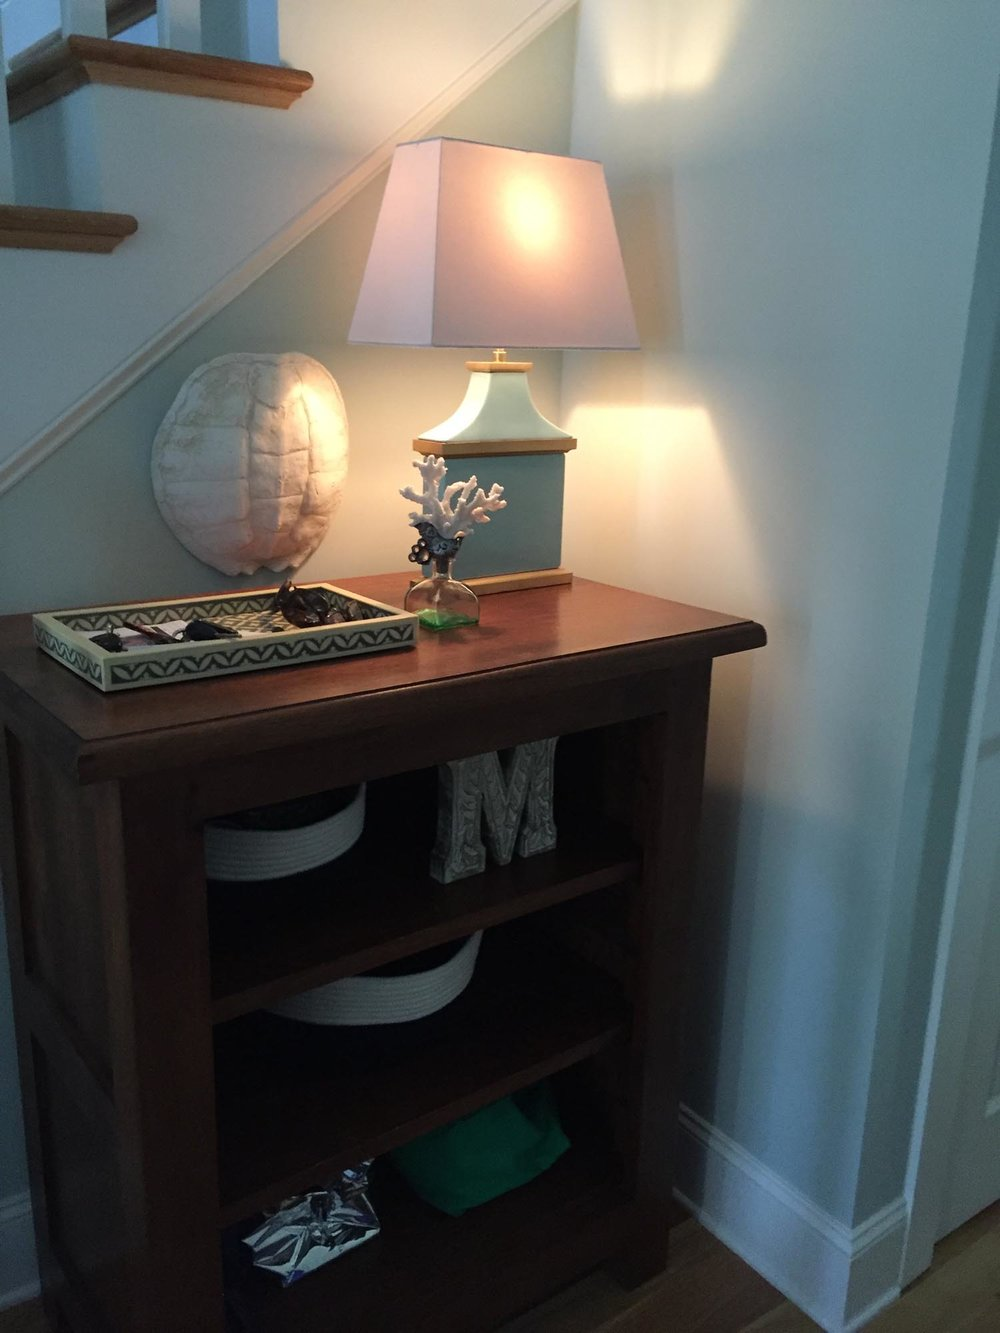 Blue and gold lamp on wooden shelving with turtle shell art on wall